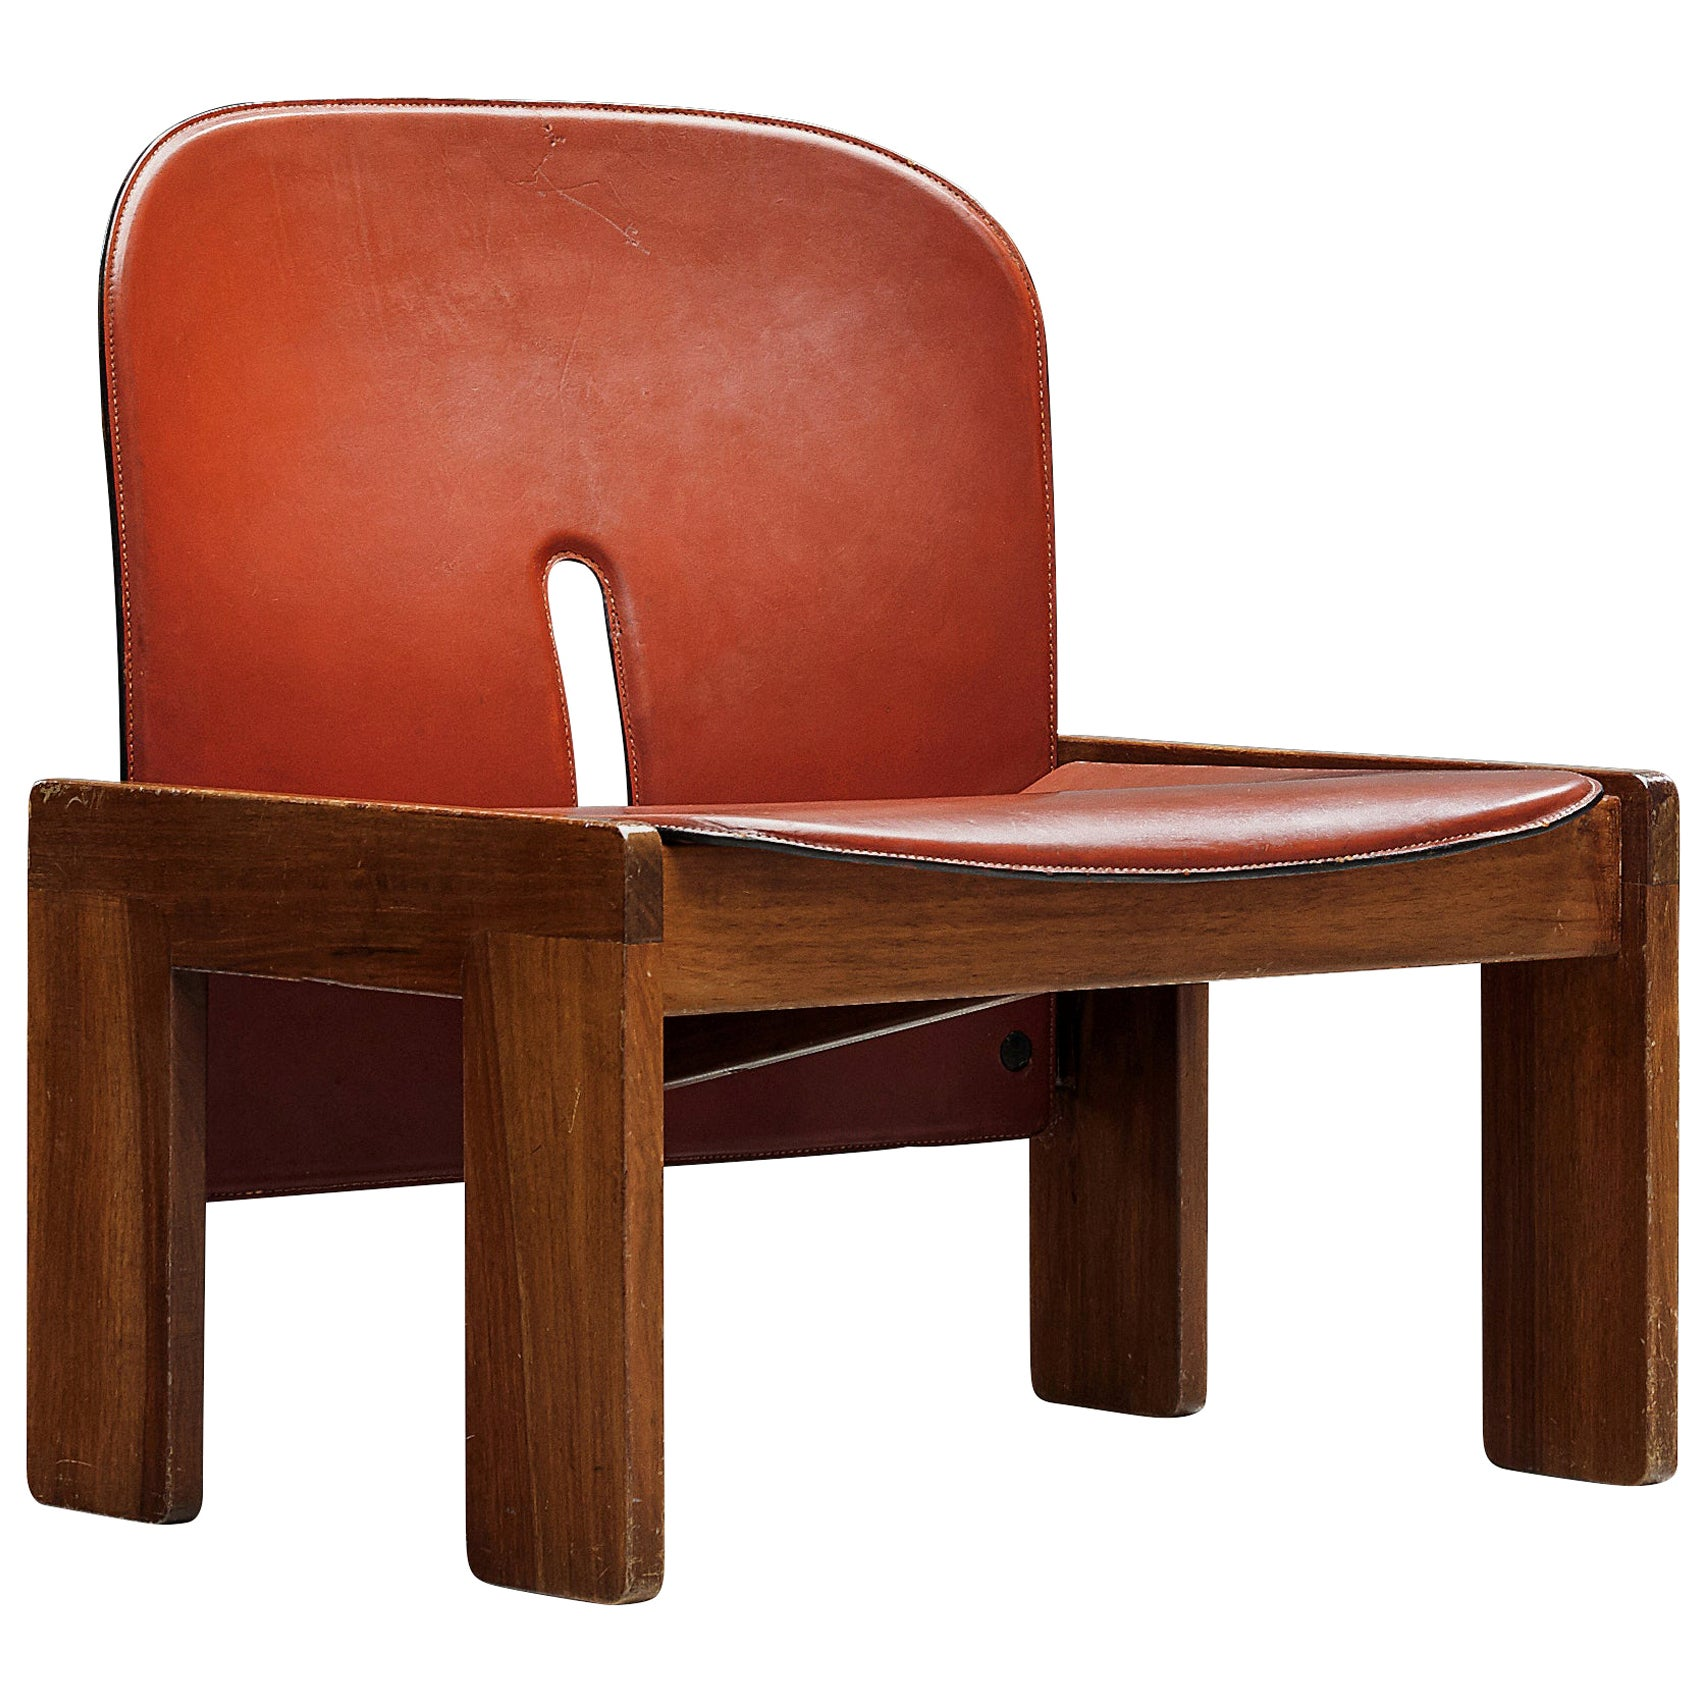 Afra & Tobia Scarpa Lounge Chair Model '925' in Walnut and Red Leather